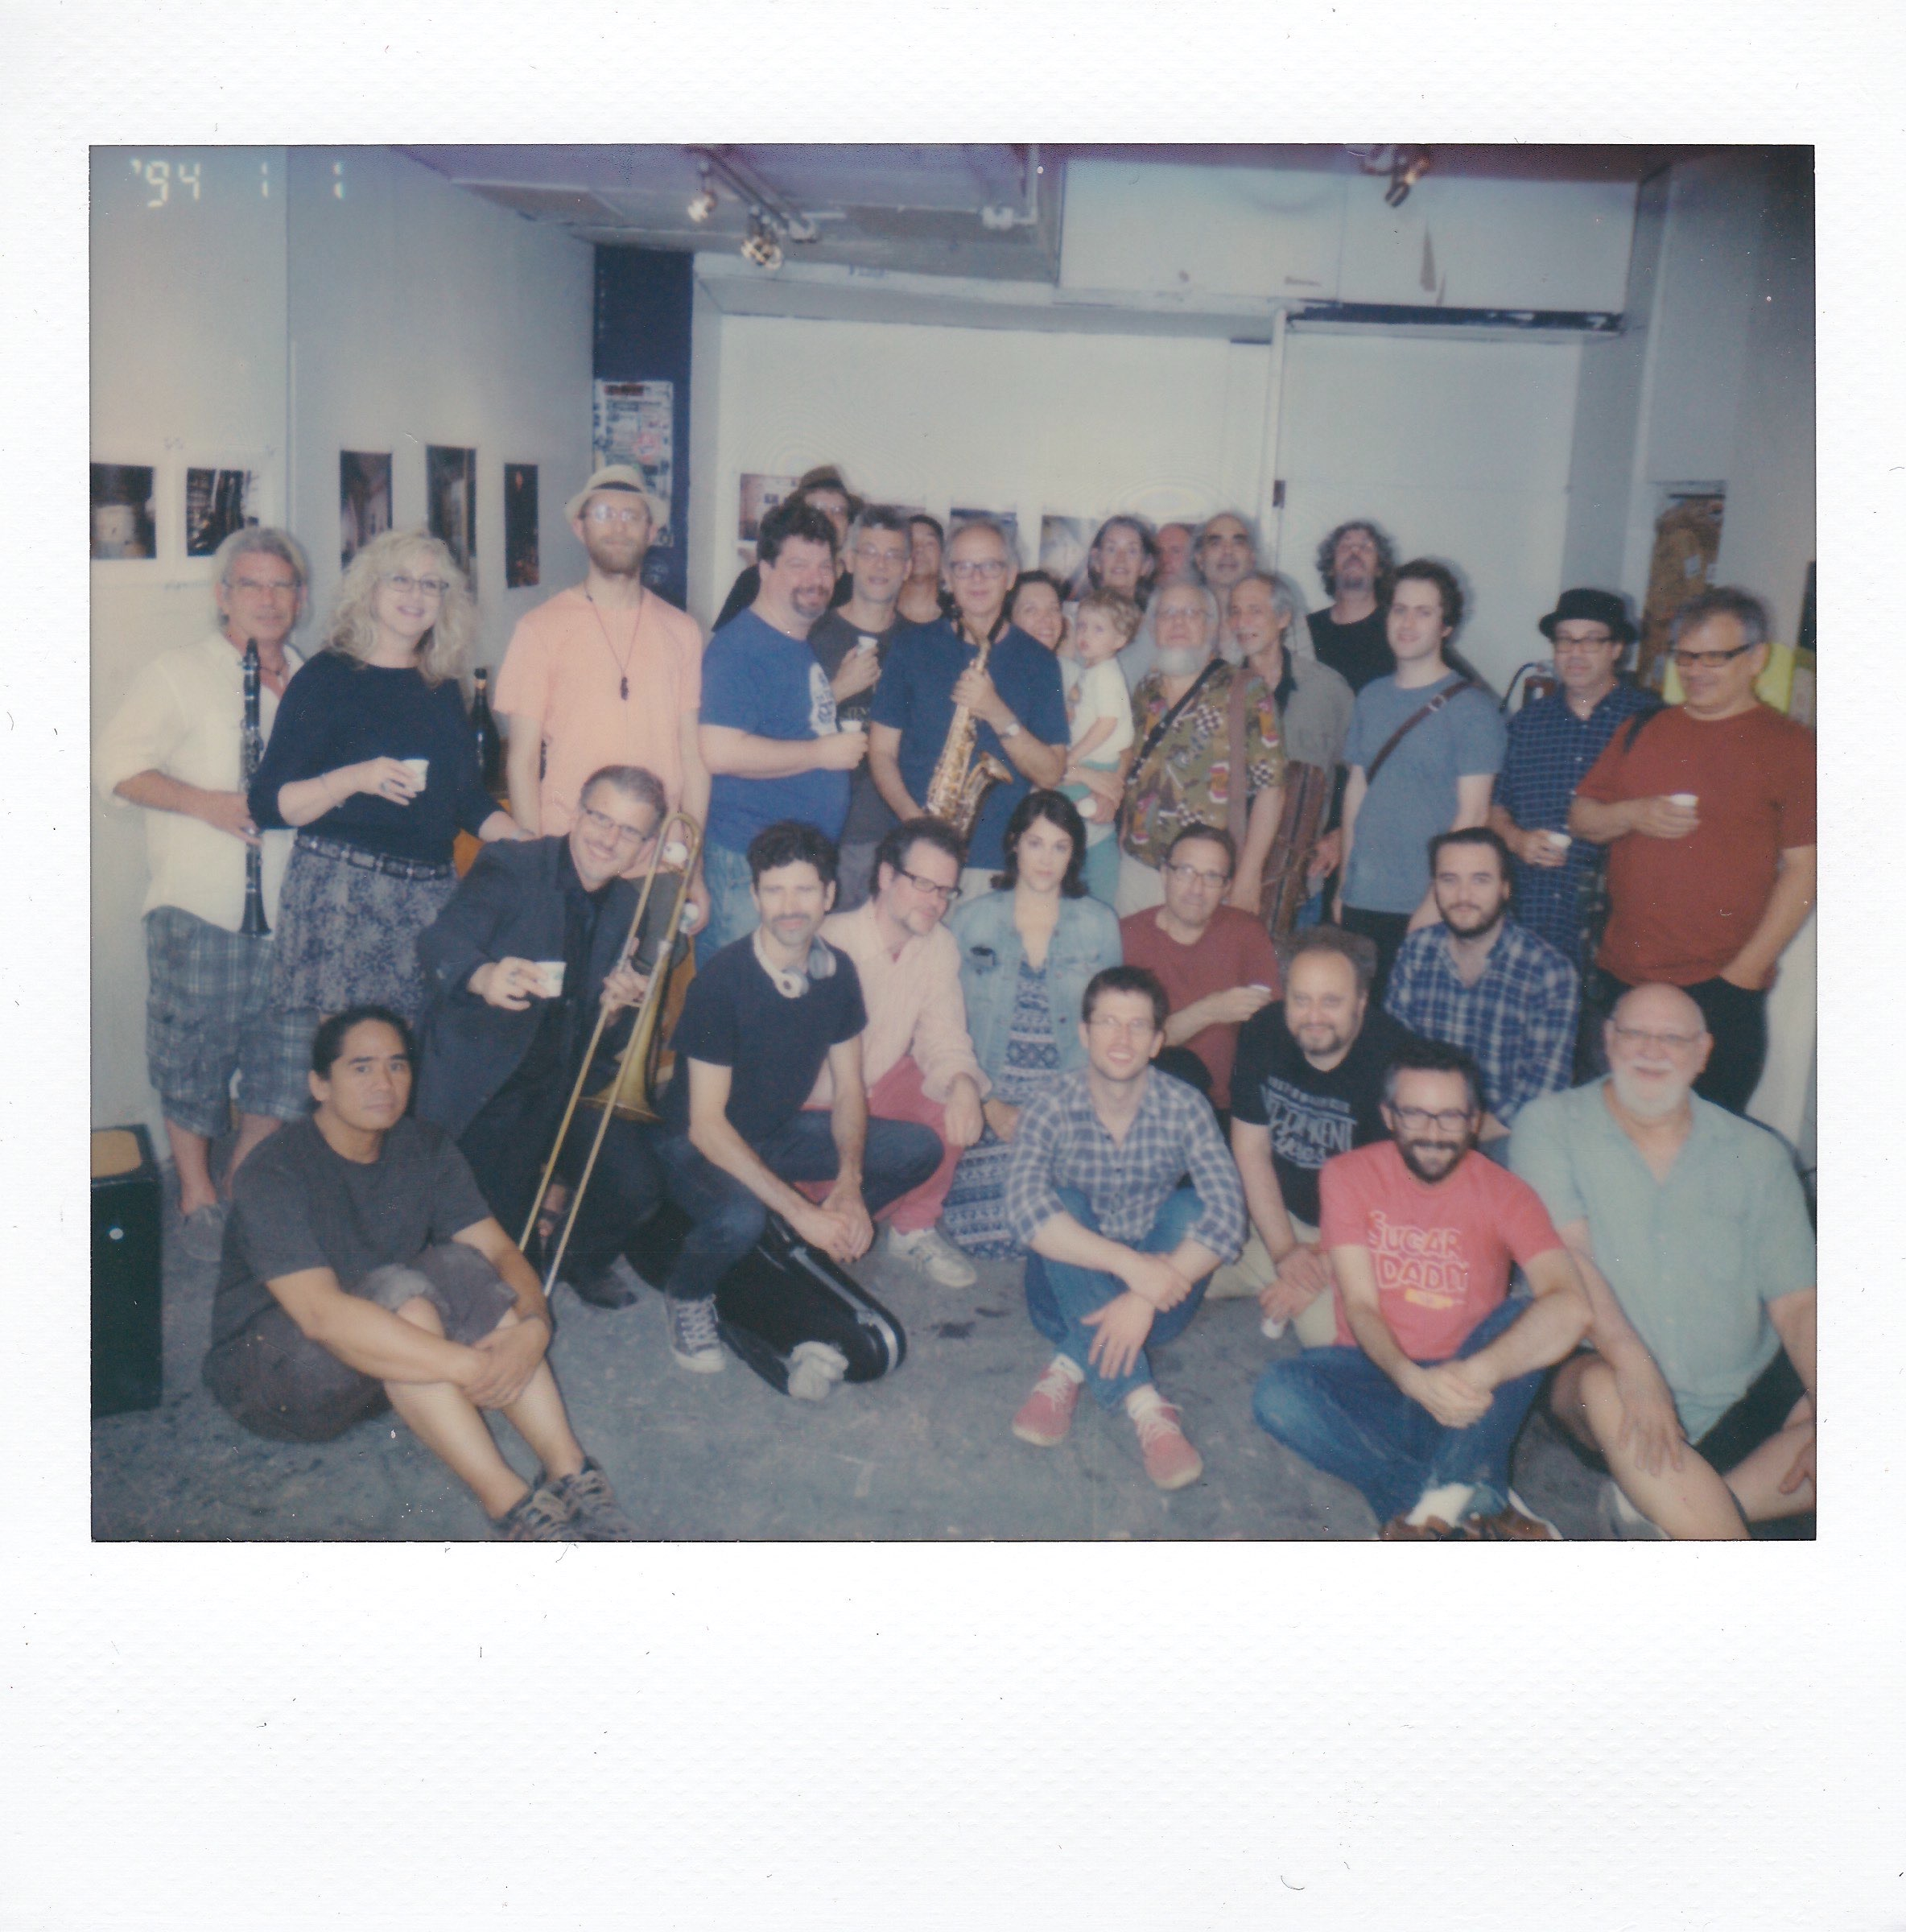 The musicians and attendees of ABC No Rio